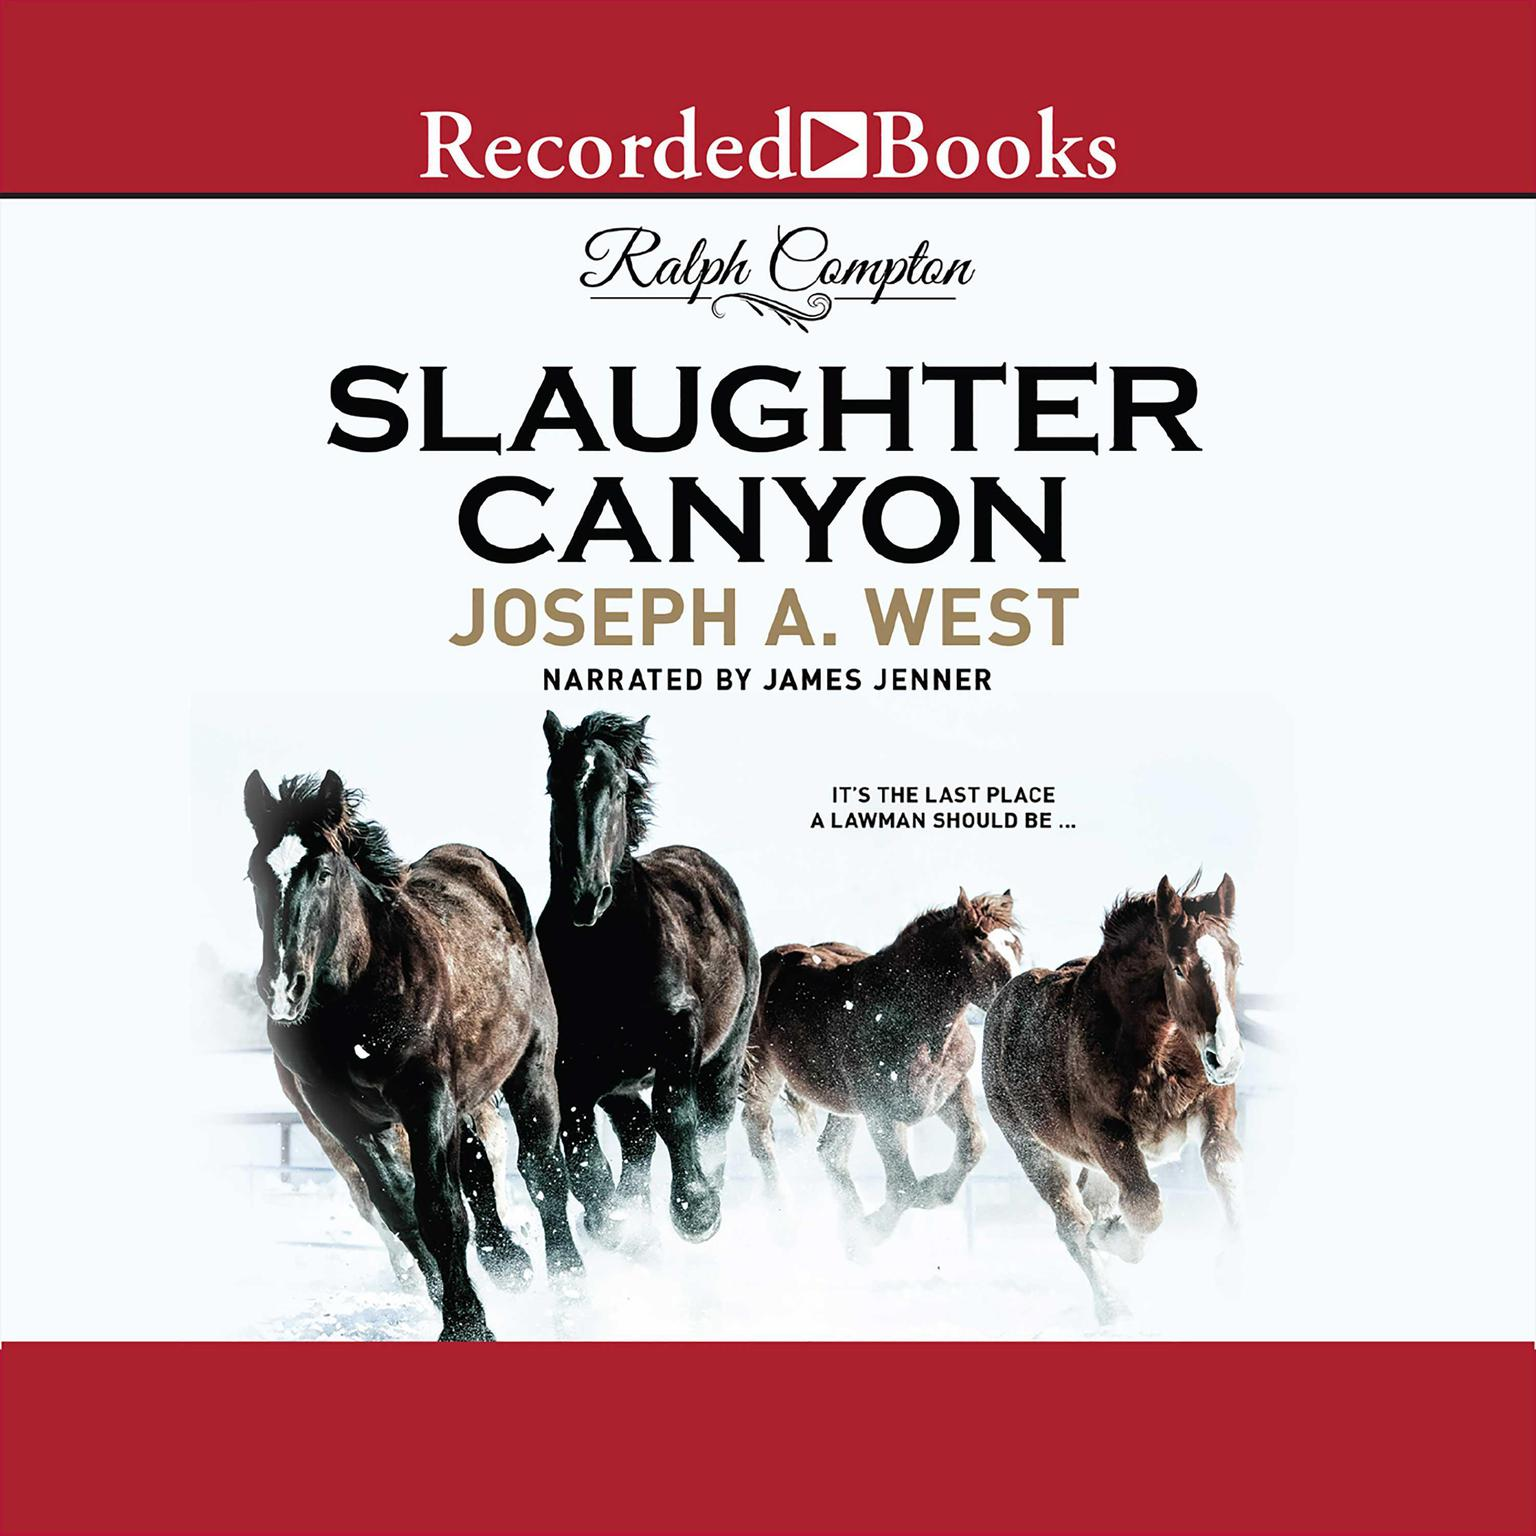 Printable Ralph Compton Slaughter Canyon Audiobook Cover Art